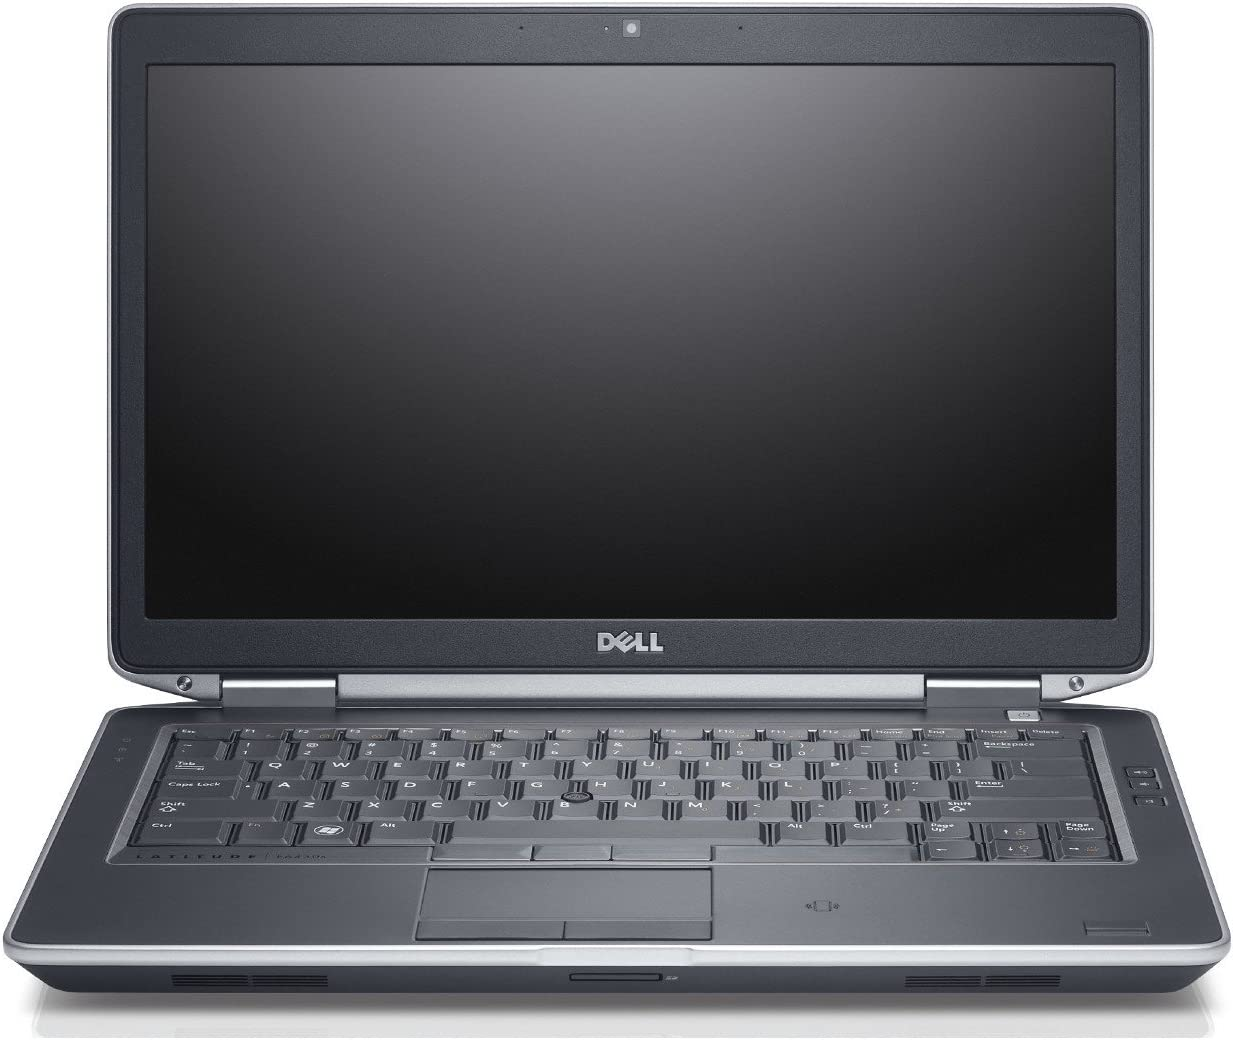 2018 Dell Latitude E6440 14in HD Business Laptop Computer, Intel Core i5-4310M up to 3.40GHz, 8GB RAM, 180GB SSD, WIFI, Bluetooth, DVDRW, Windows 10 Pro (Renewed)